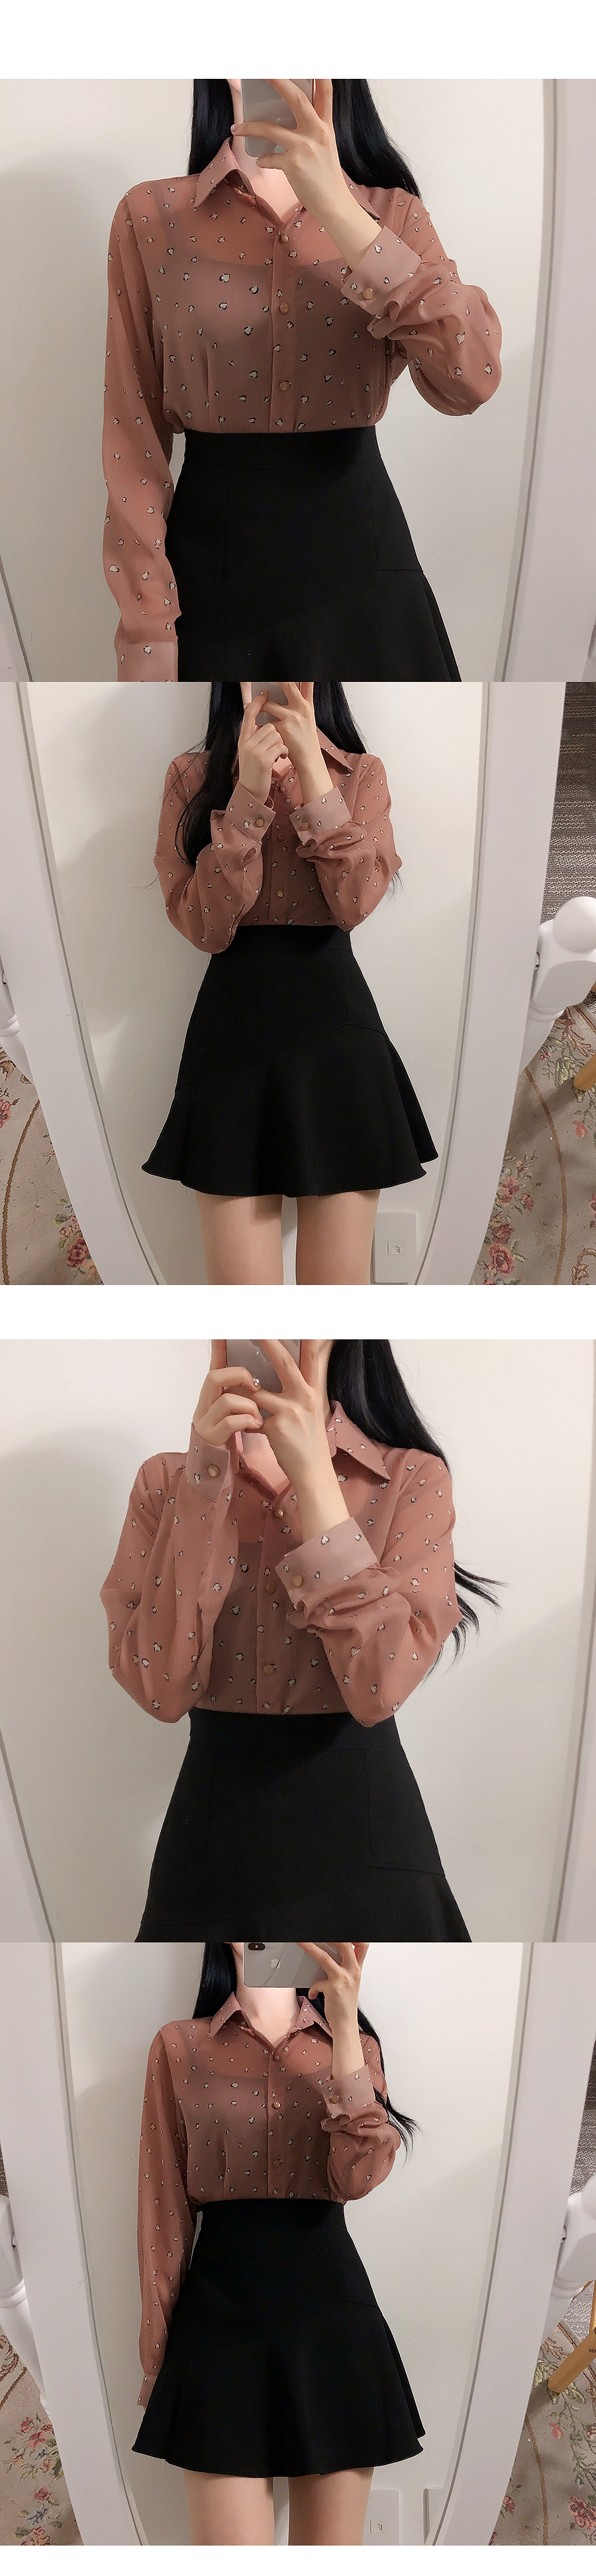 Self-produced, same day delivery ♥ Heart hop see-through color blouse